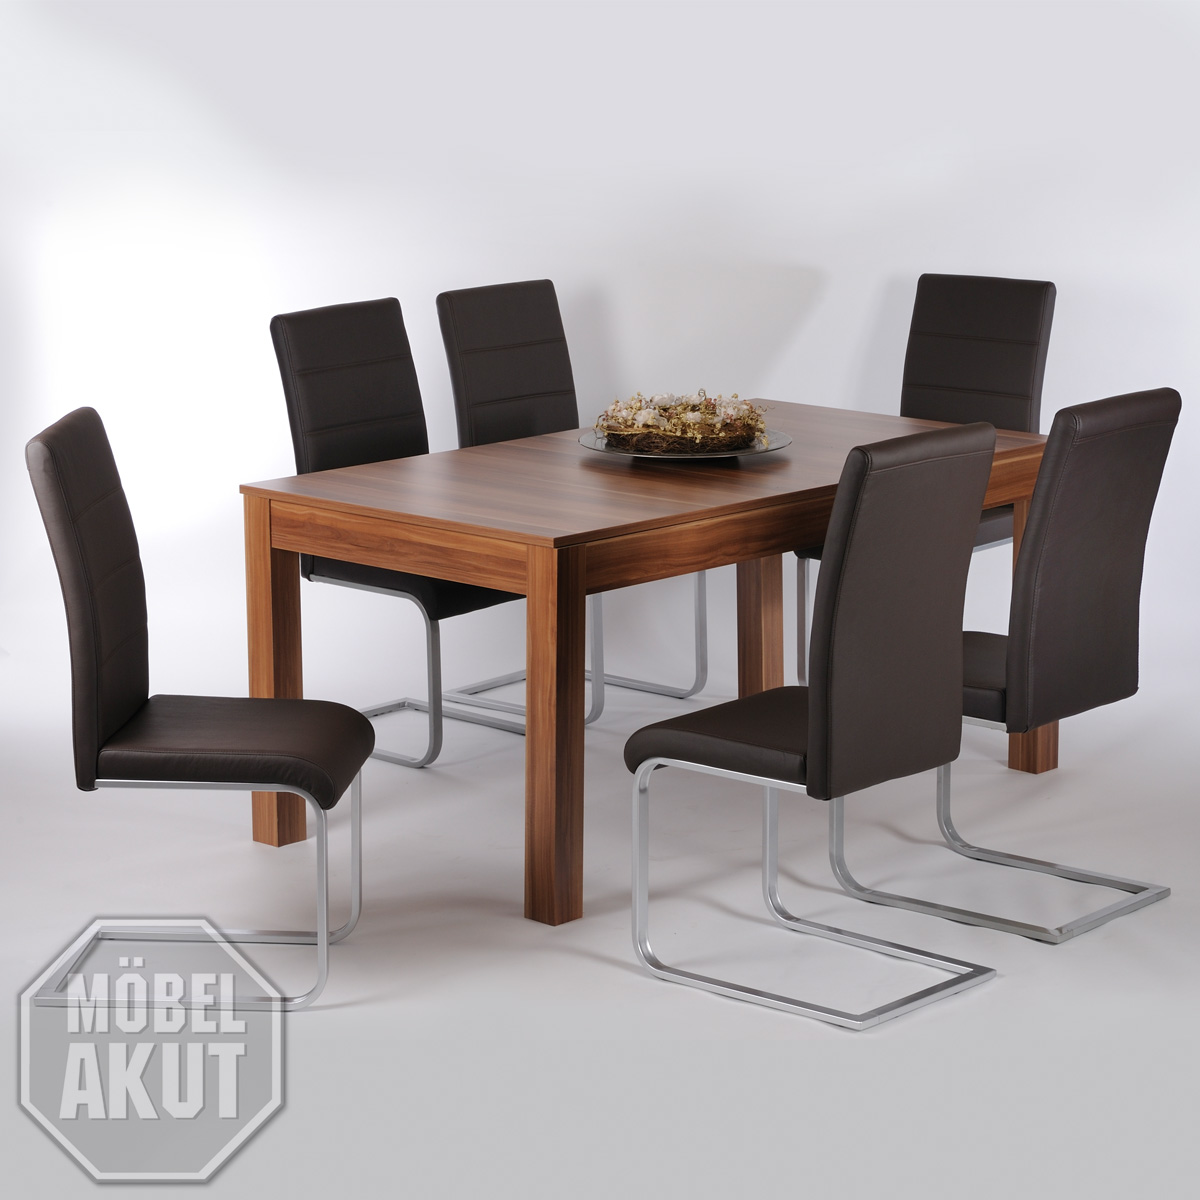 esstisch kurt esszimmer tisch ausziehbar in walnuss 160 200x90 cm ebay. Black Bedroom Furniture Sets. Home Design Ideas